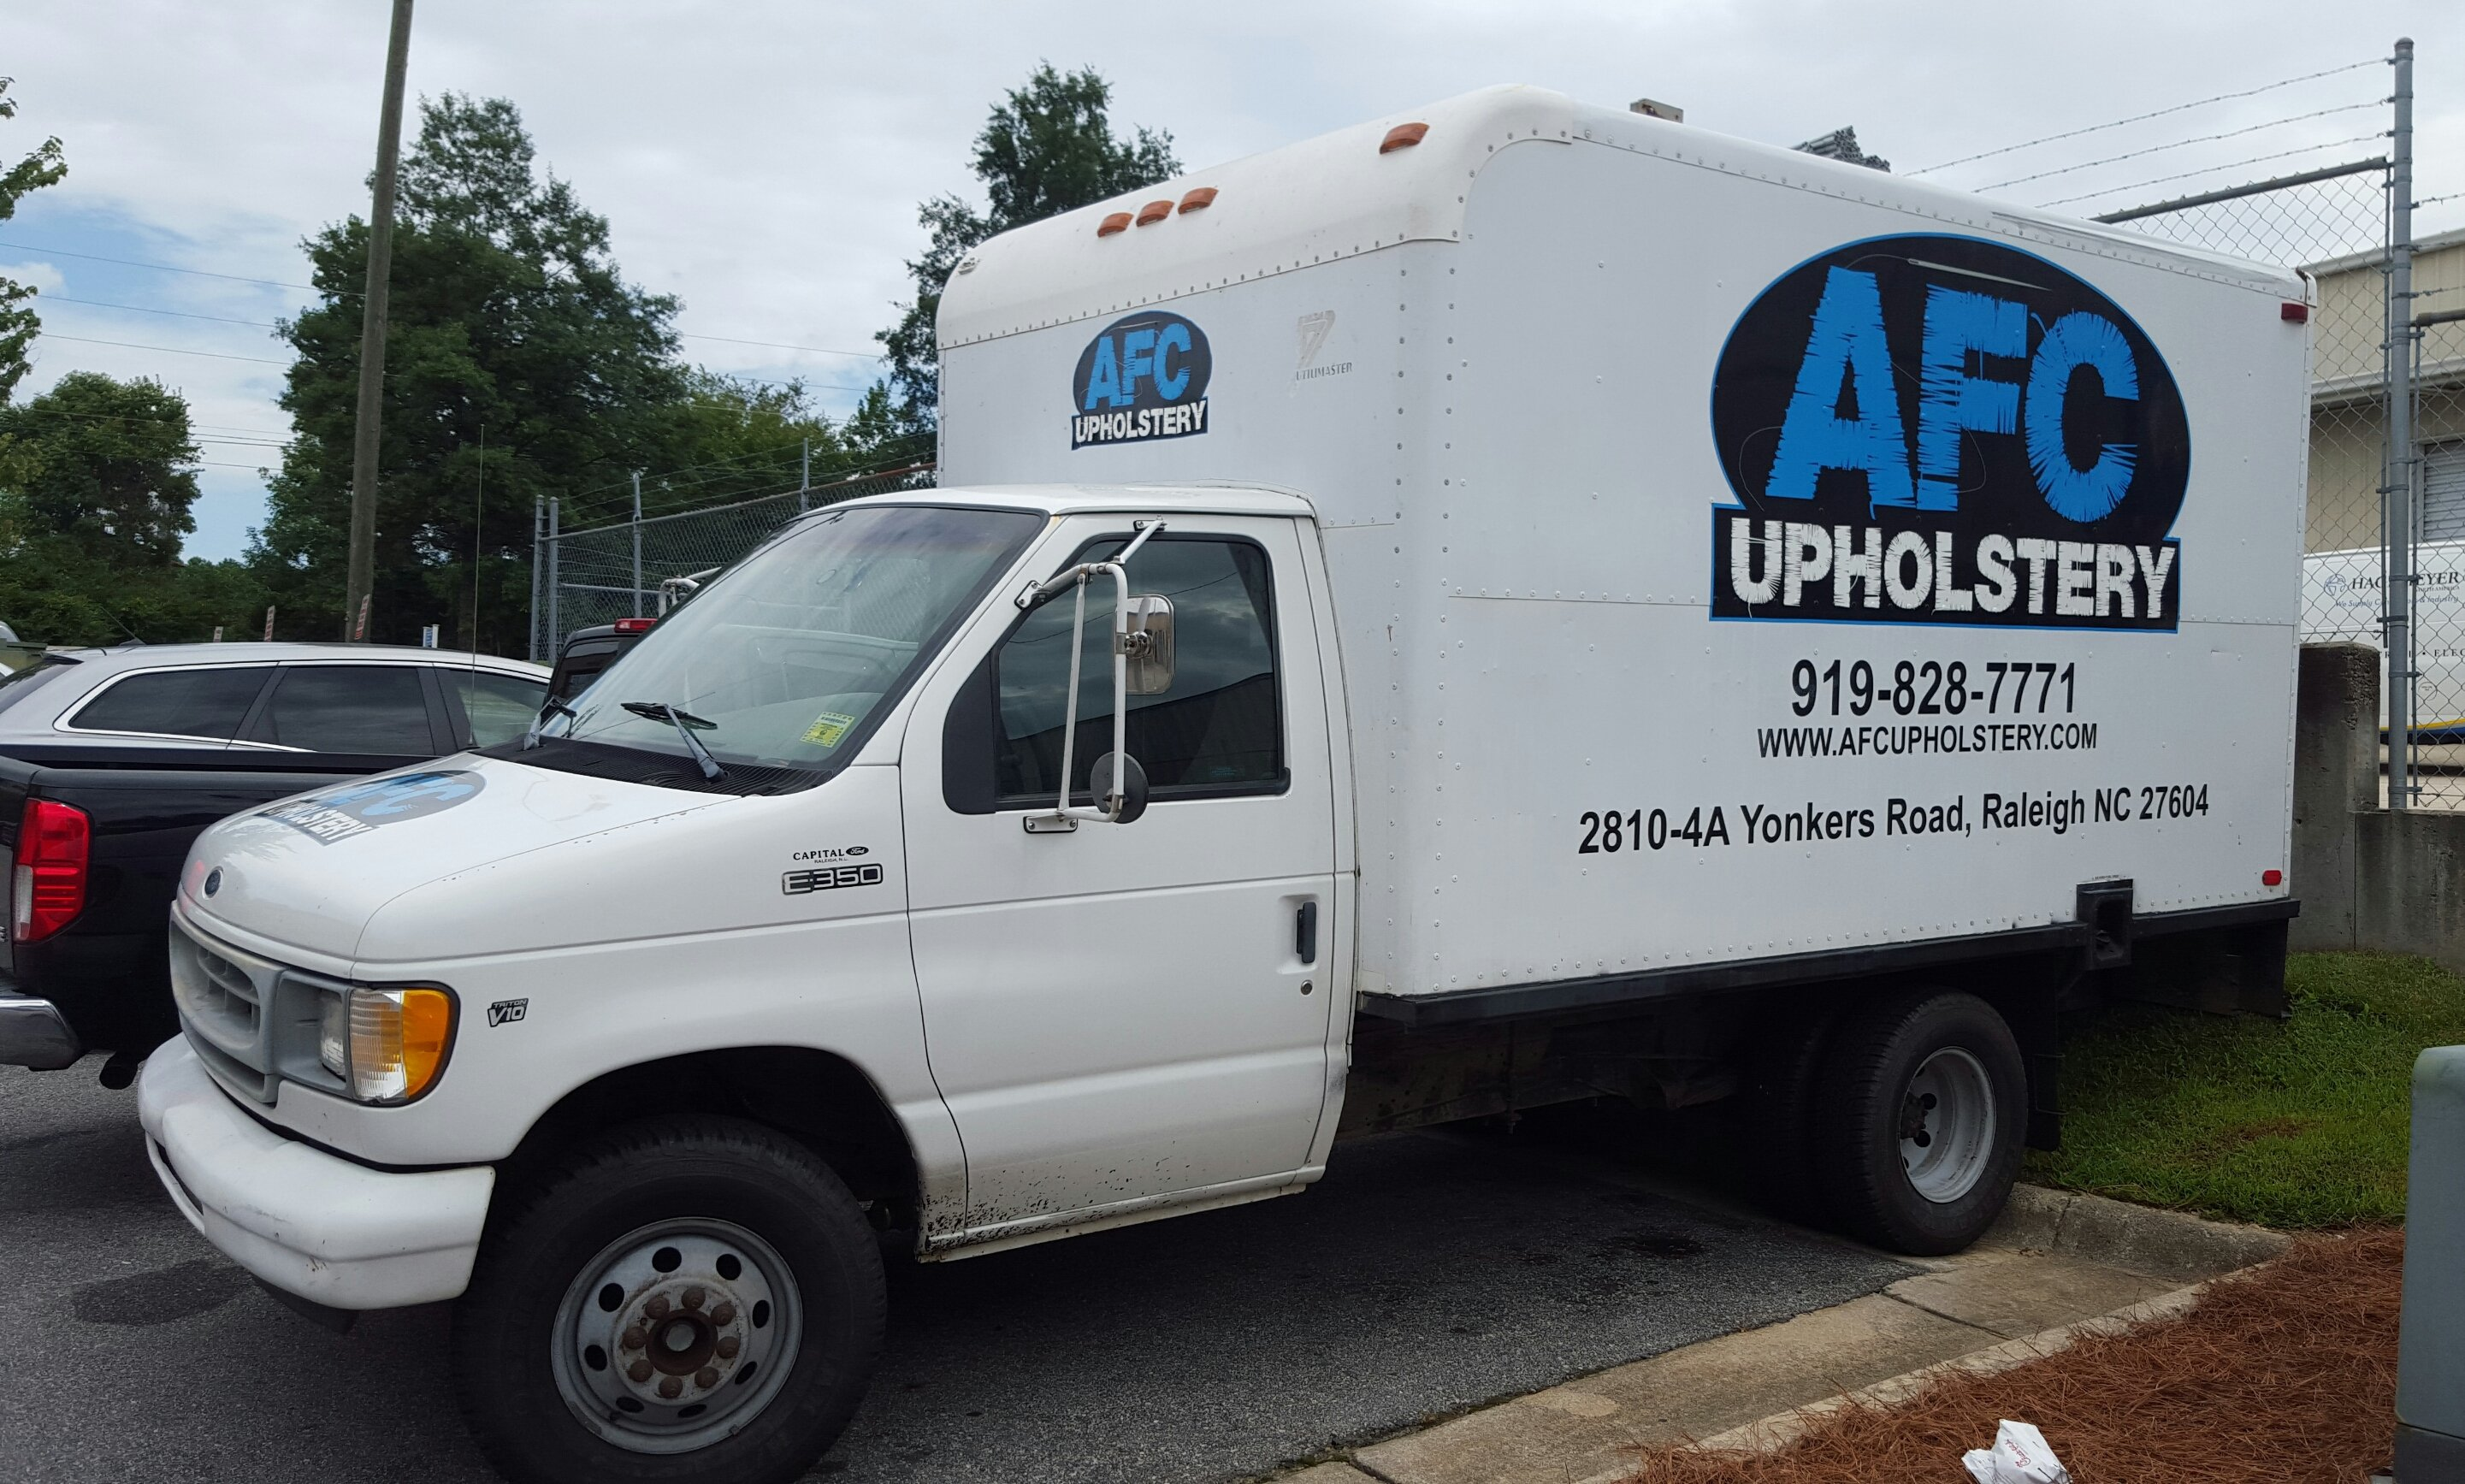 Upholstery Repair Raleigh, NC | Upholstery Services Cary, NC